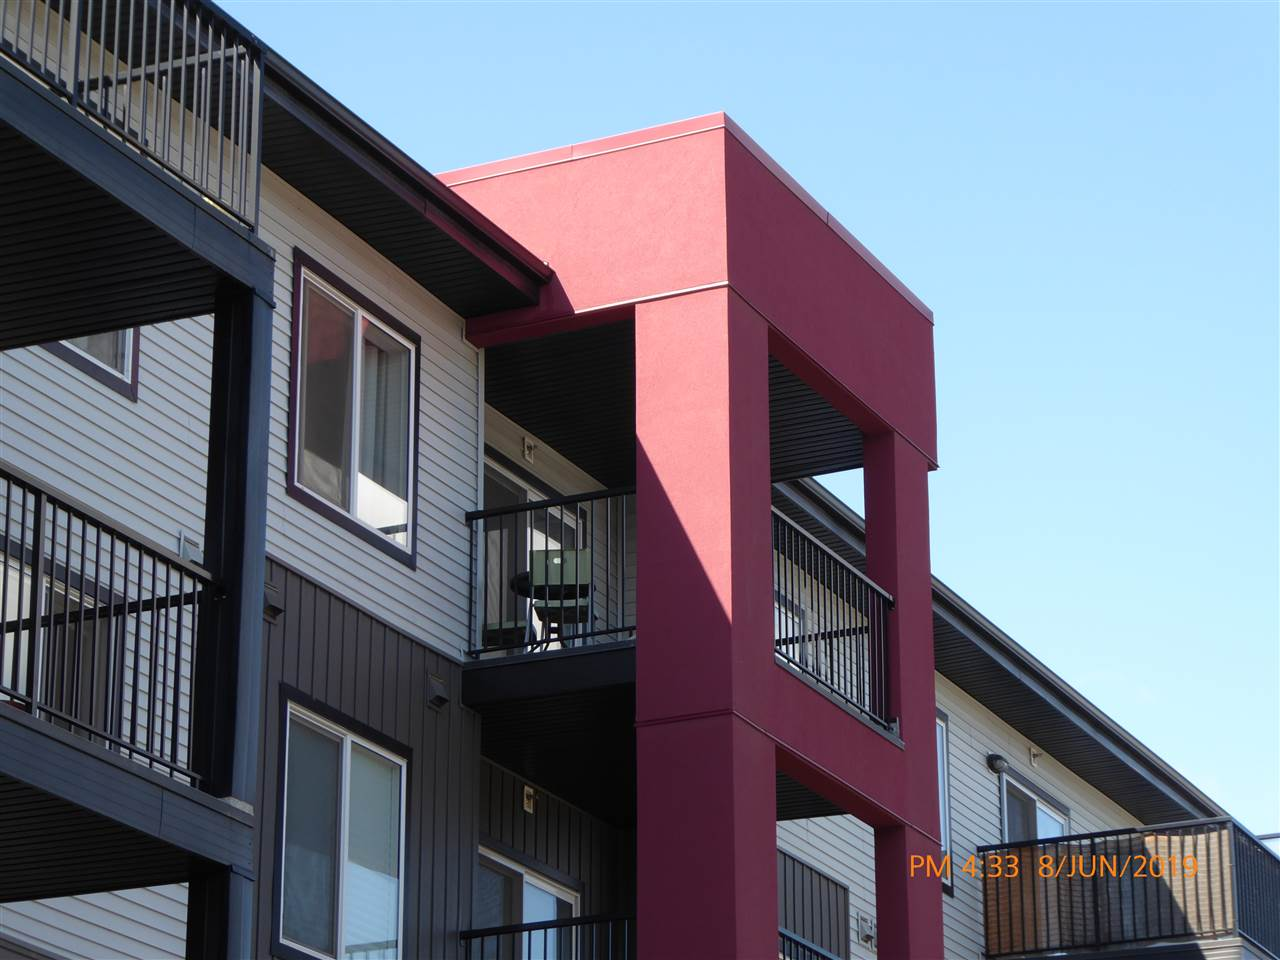 **2-Bedroom with 2 Parking Stalls!** Just $167,900 for this fine Top-Floor Condo Unit.**Located in the desired community of Windermere in SouthWest Edmonton,this TOP FLOOR 2-Bedroom Carrington Elements Carbon floor plan with low condo fees is PERFECT FOR INVESTORS OR FIRST TIME BUYERS! The unit has a bright open concept living room and kitchen with dark laminate flooring and a large **Covered Balcony**. The unit also boasts **2 TITLED PARKING STALLS**, a large 4-piece bathroom and in-suite stacked washer and dryer. Walking distance to shopping, restaurants, fitness activities and two Elementary Schools. Plus quick and easy access to the Anthony Henday Freeway and the Edmonton International Airport. And Quick Possession is Available!